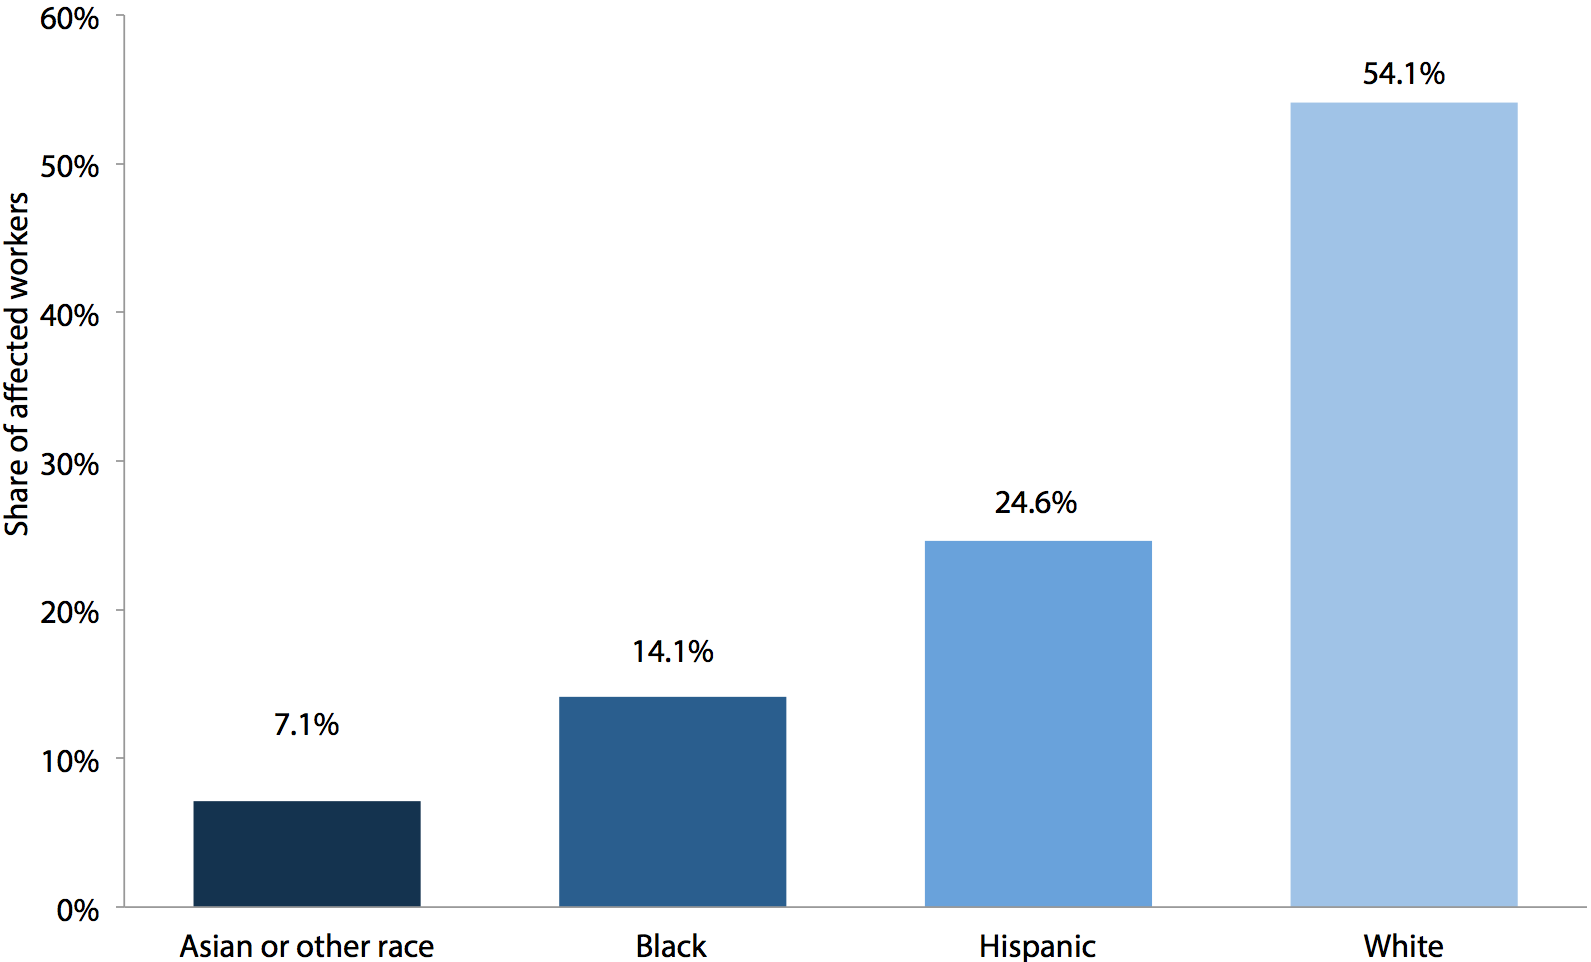 Race/ethnicity of workers affected by increasing the federal minimum wage to $10.10 by July 1, 2015